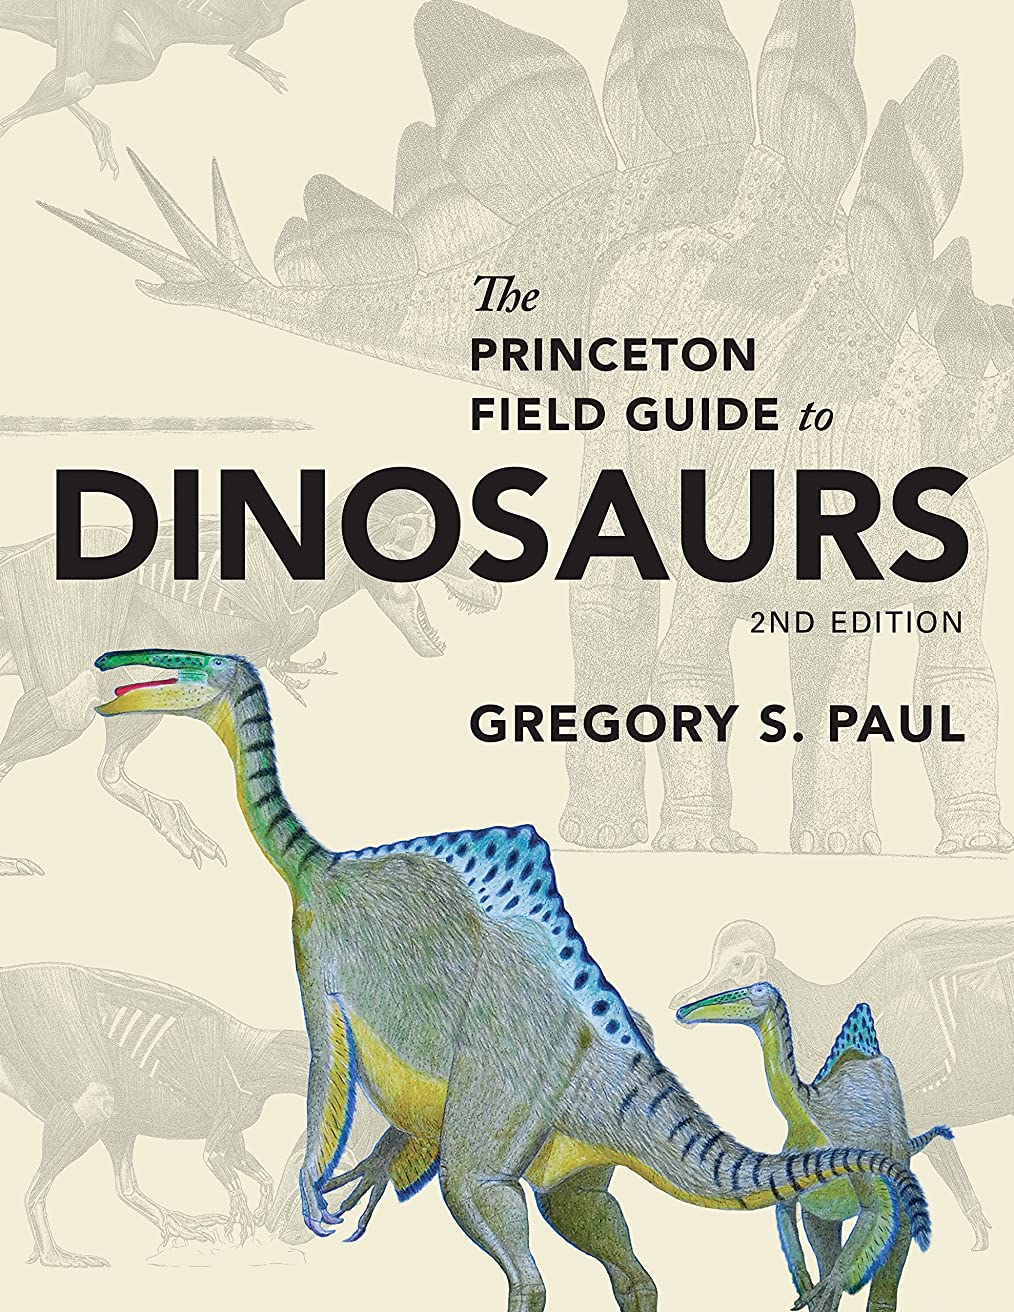 期待する虫を数える表面The Princeton Field Guide to Dinosaurs: Second Edition (Princeton Field Guides Book 110) (English Edition)